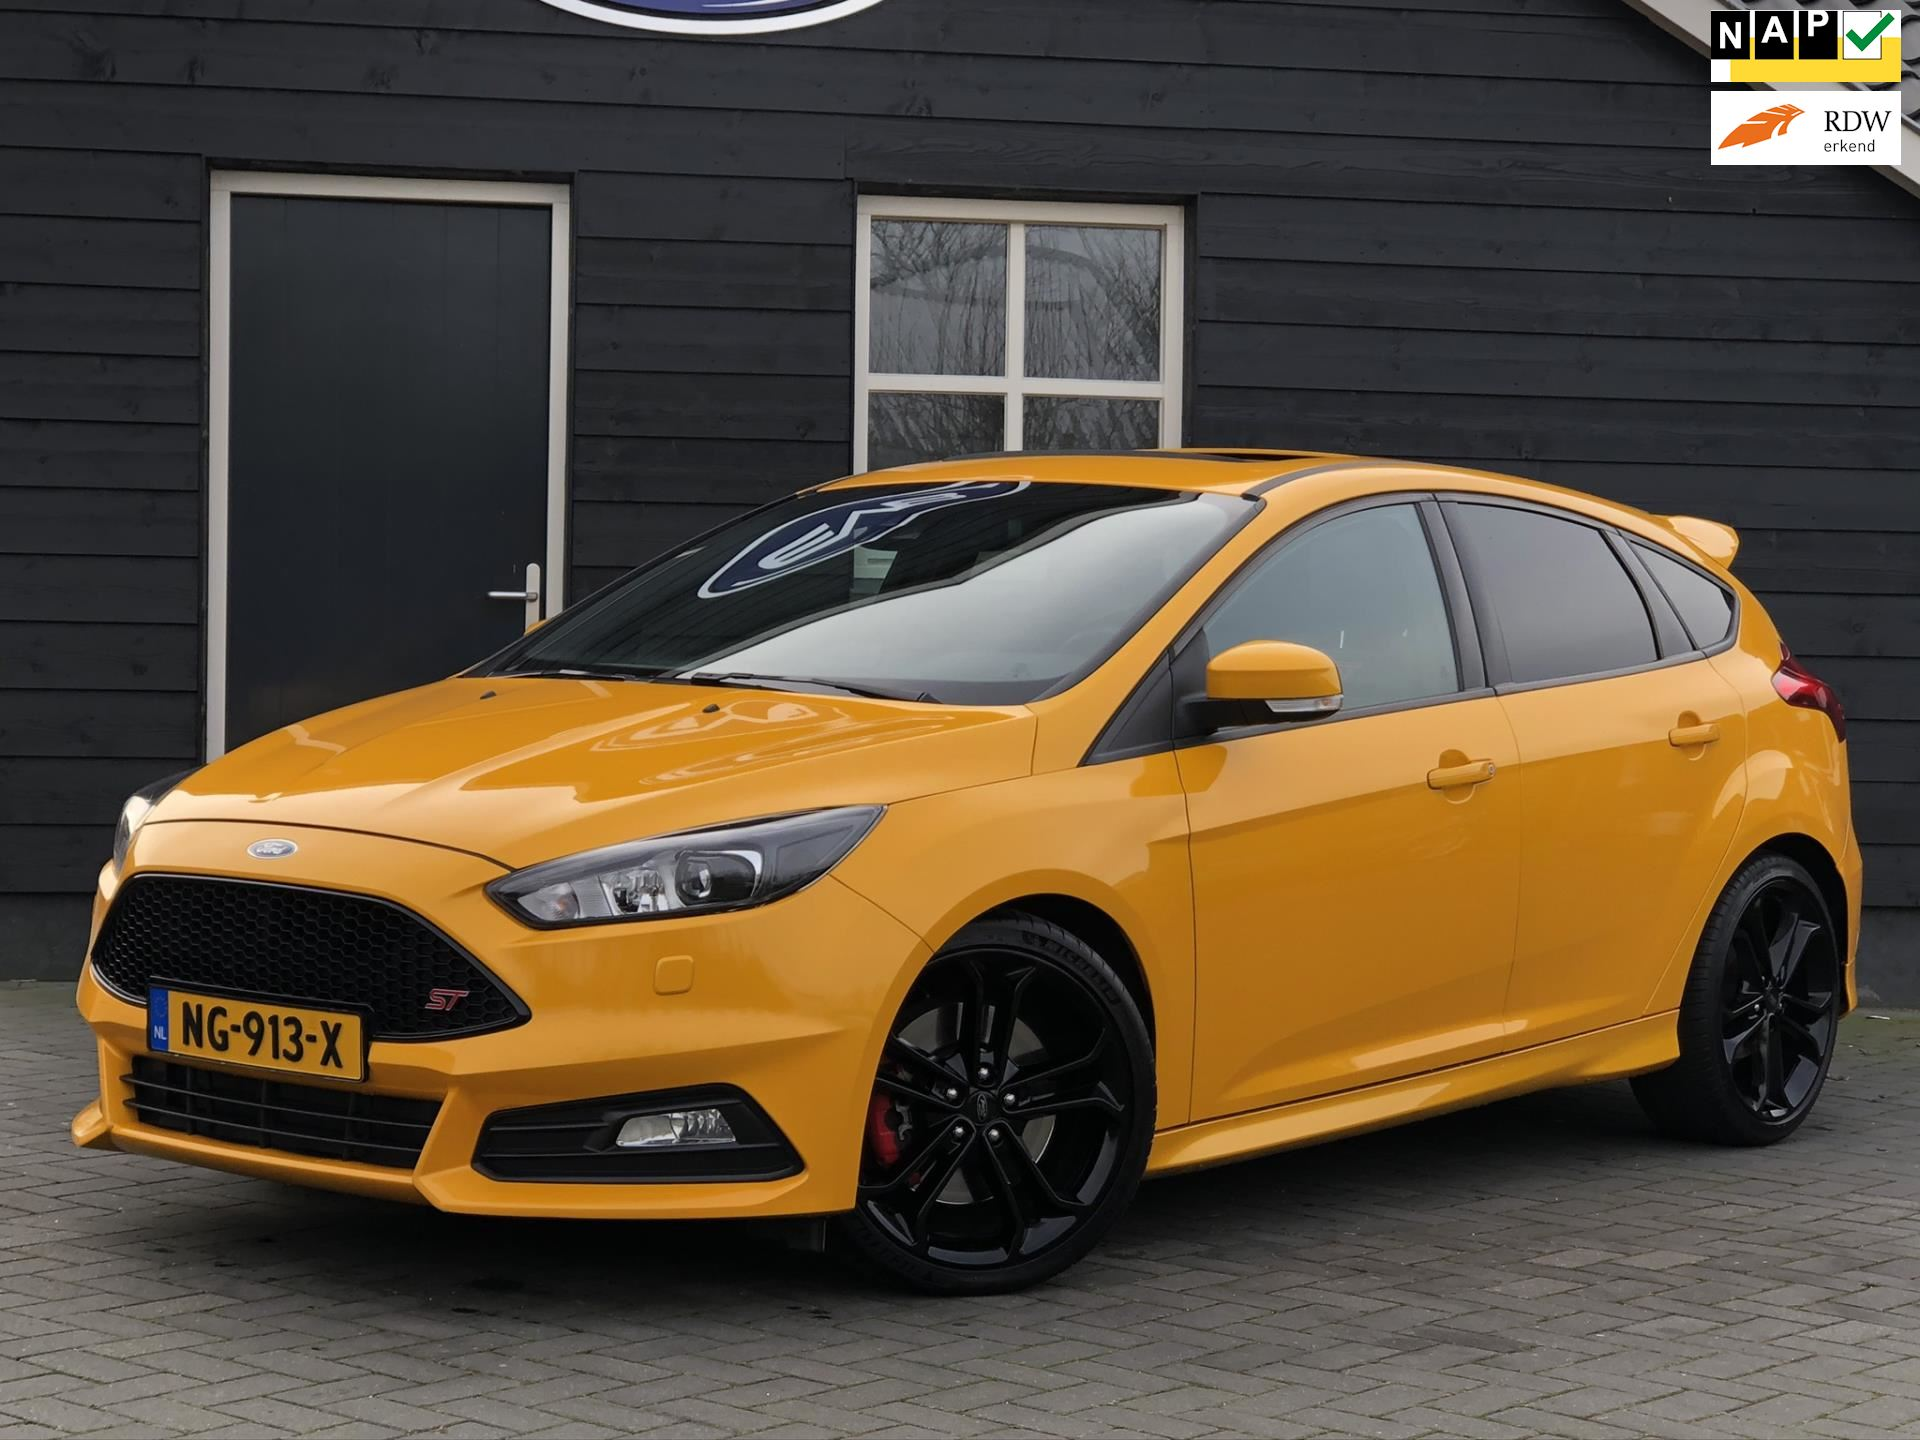 Ford Focus occasion - E. van Boxtel Auto's BV